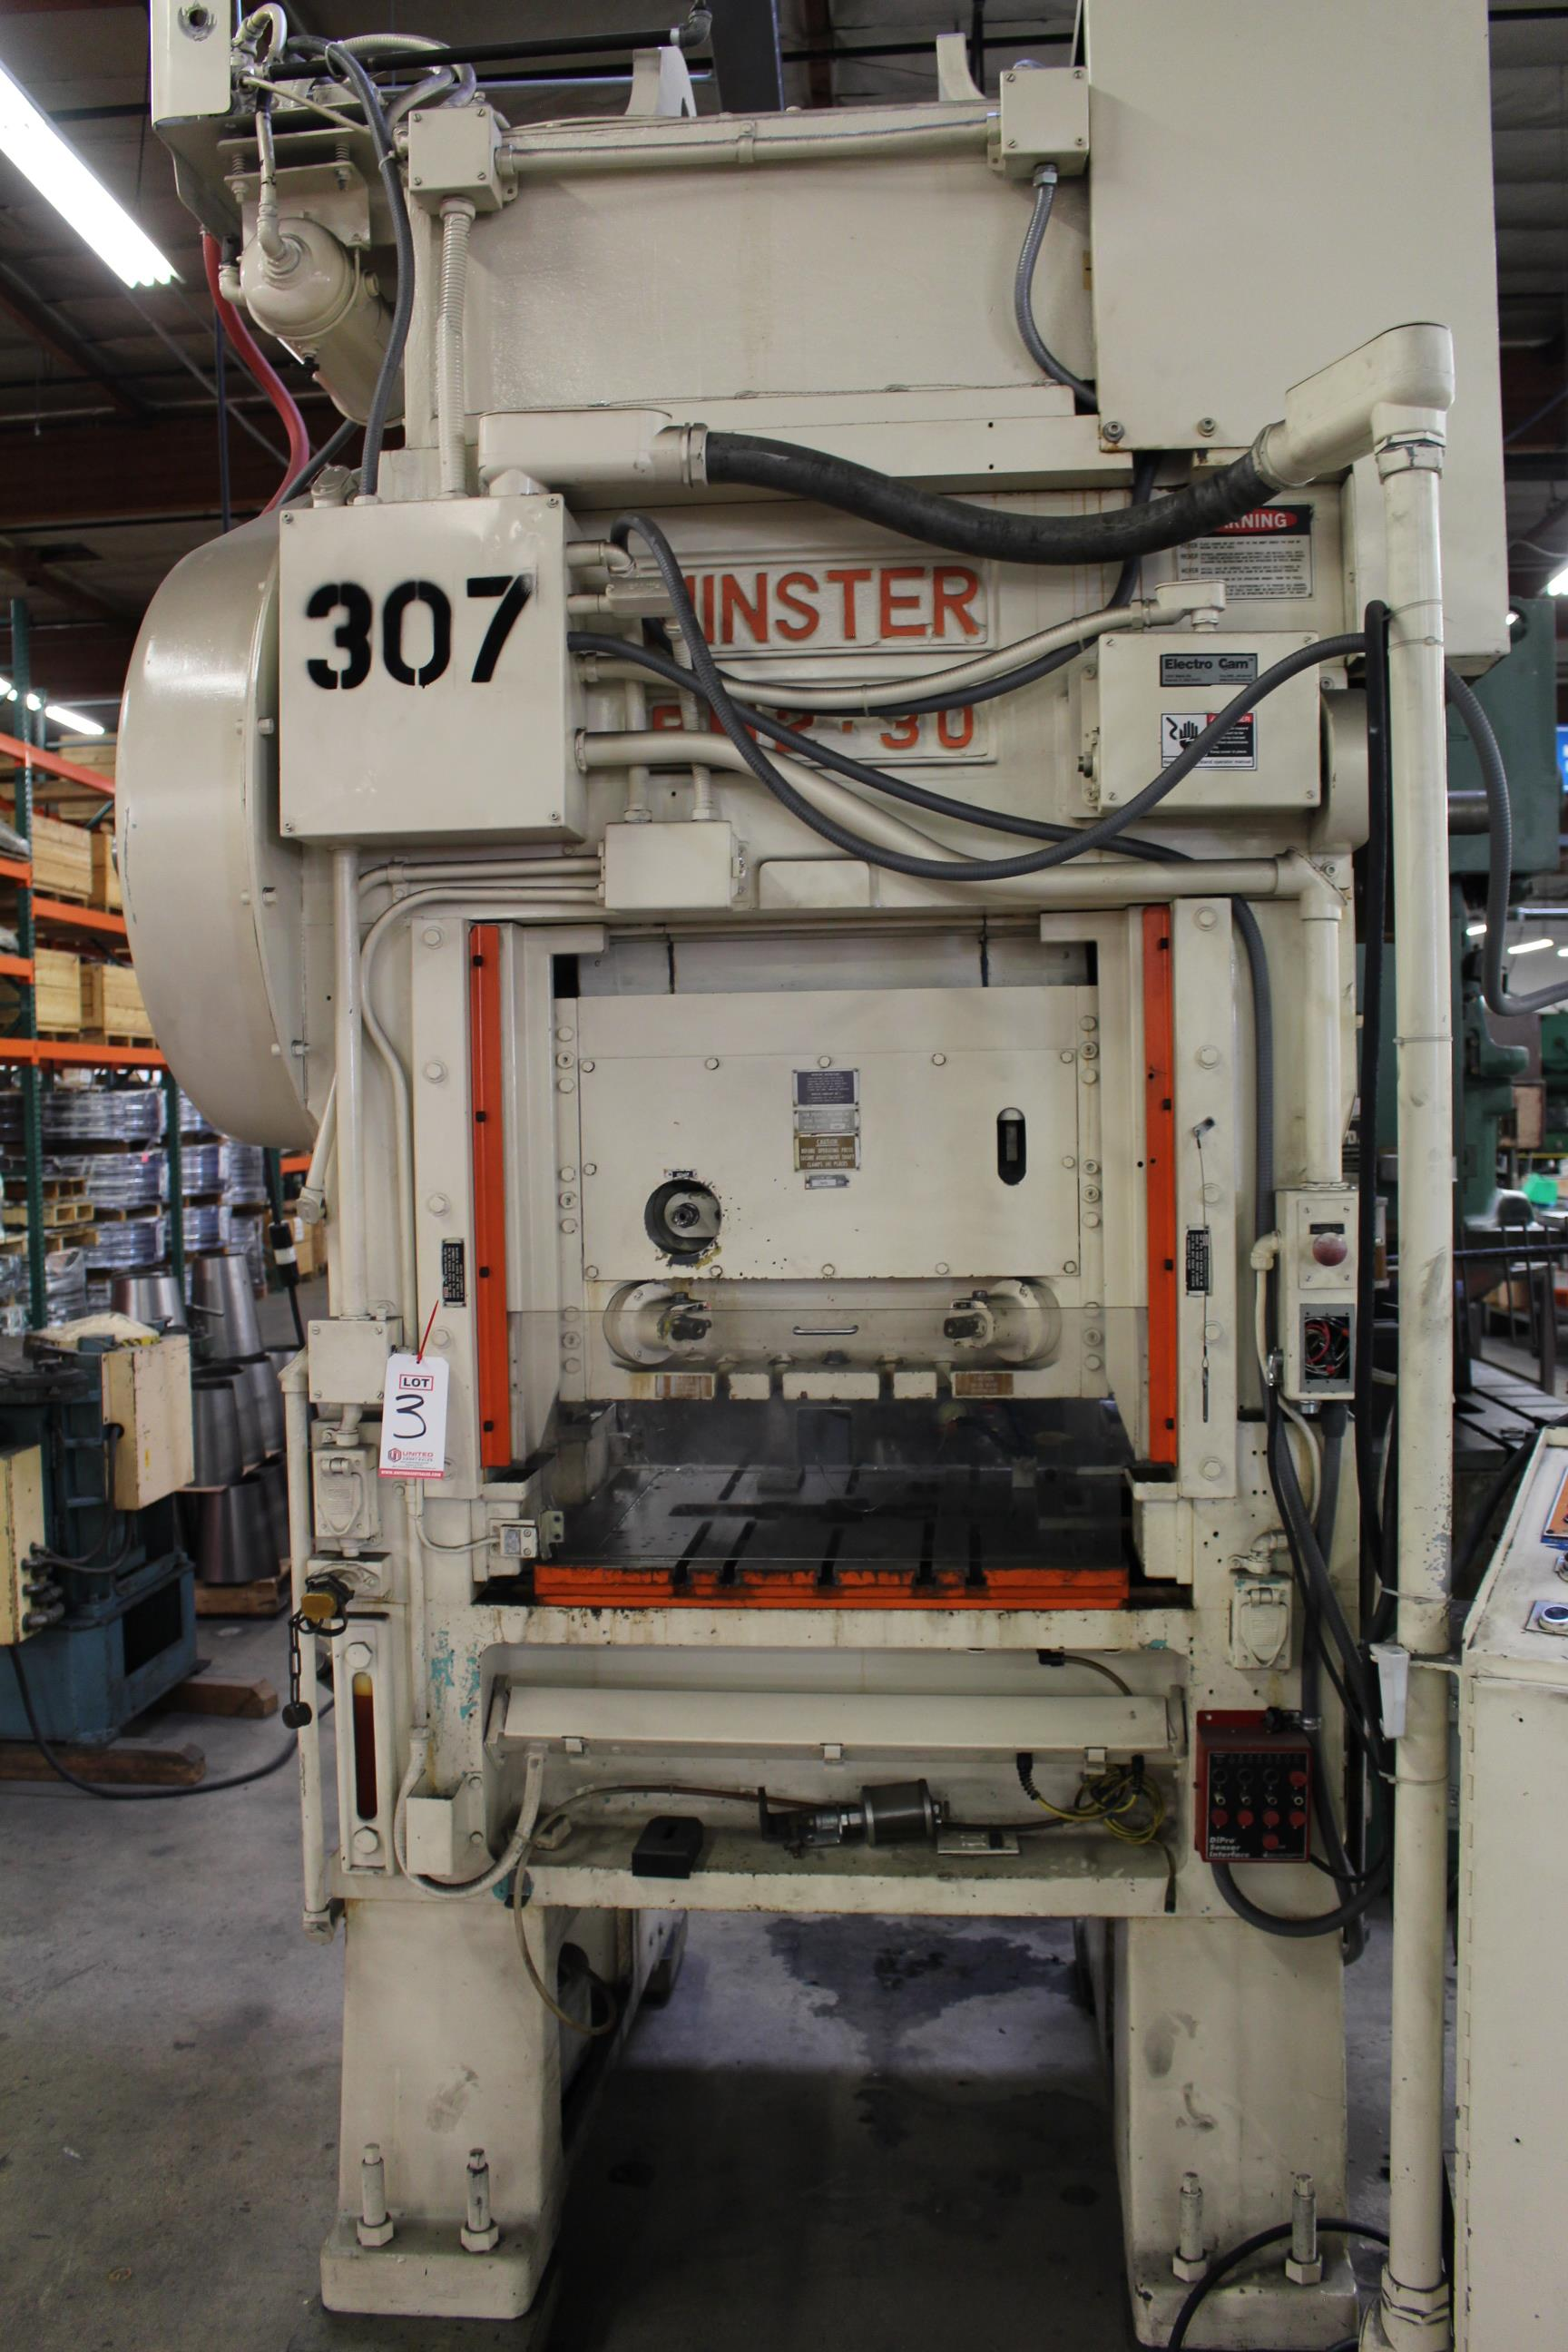 "MINSTER MODEL PM2-30-30 HIGH SPEED PUNCH PRESS, 30 TON CAPACITY, 30"" X 20"" BOLSTER, 0-1,000 SPM, 1- - Image 3 of 18"